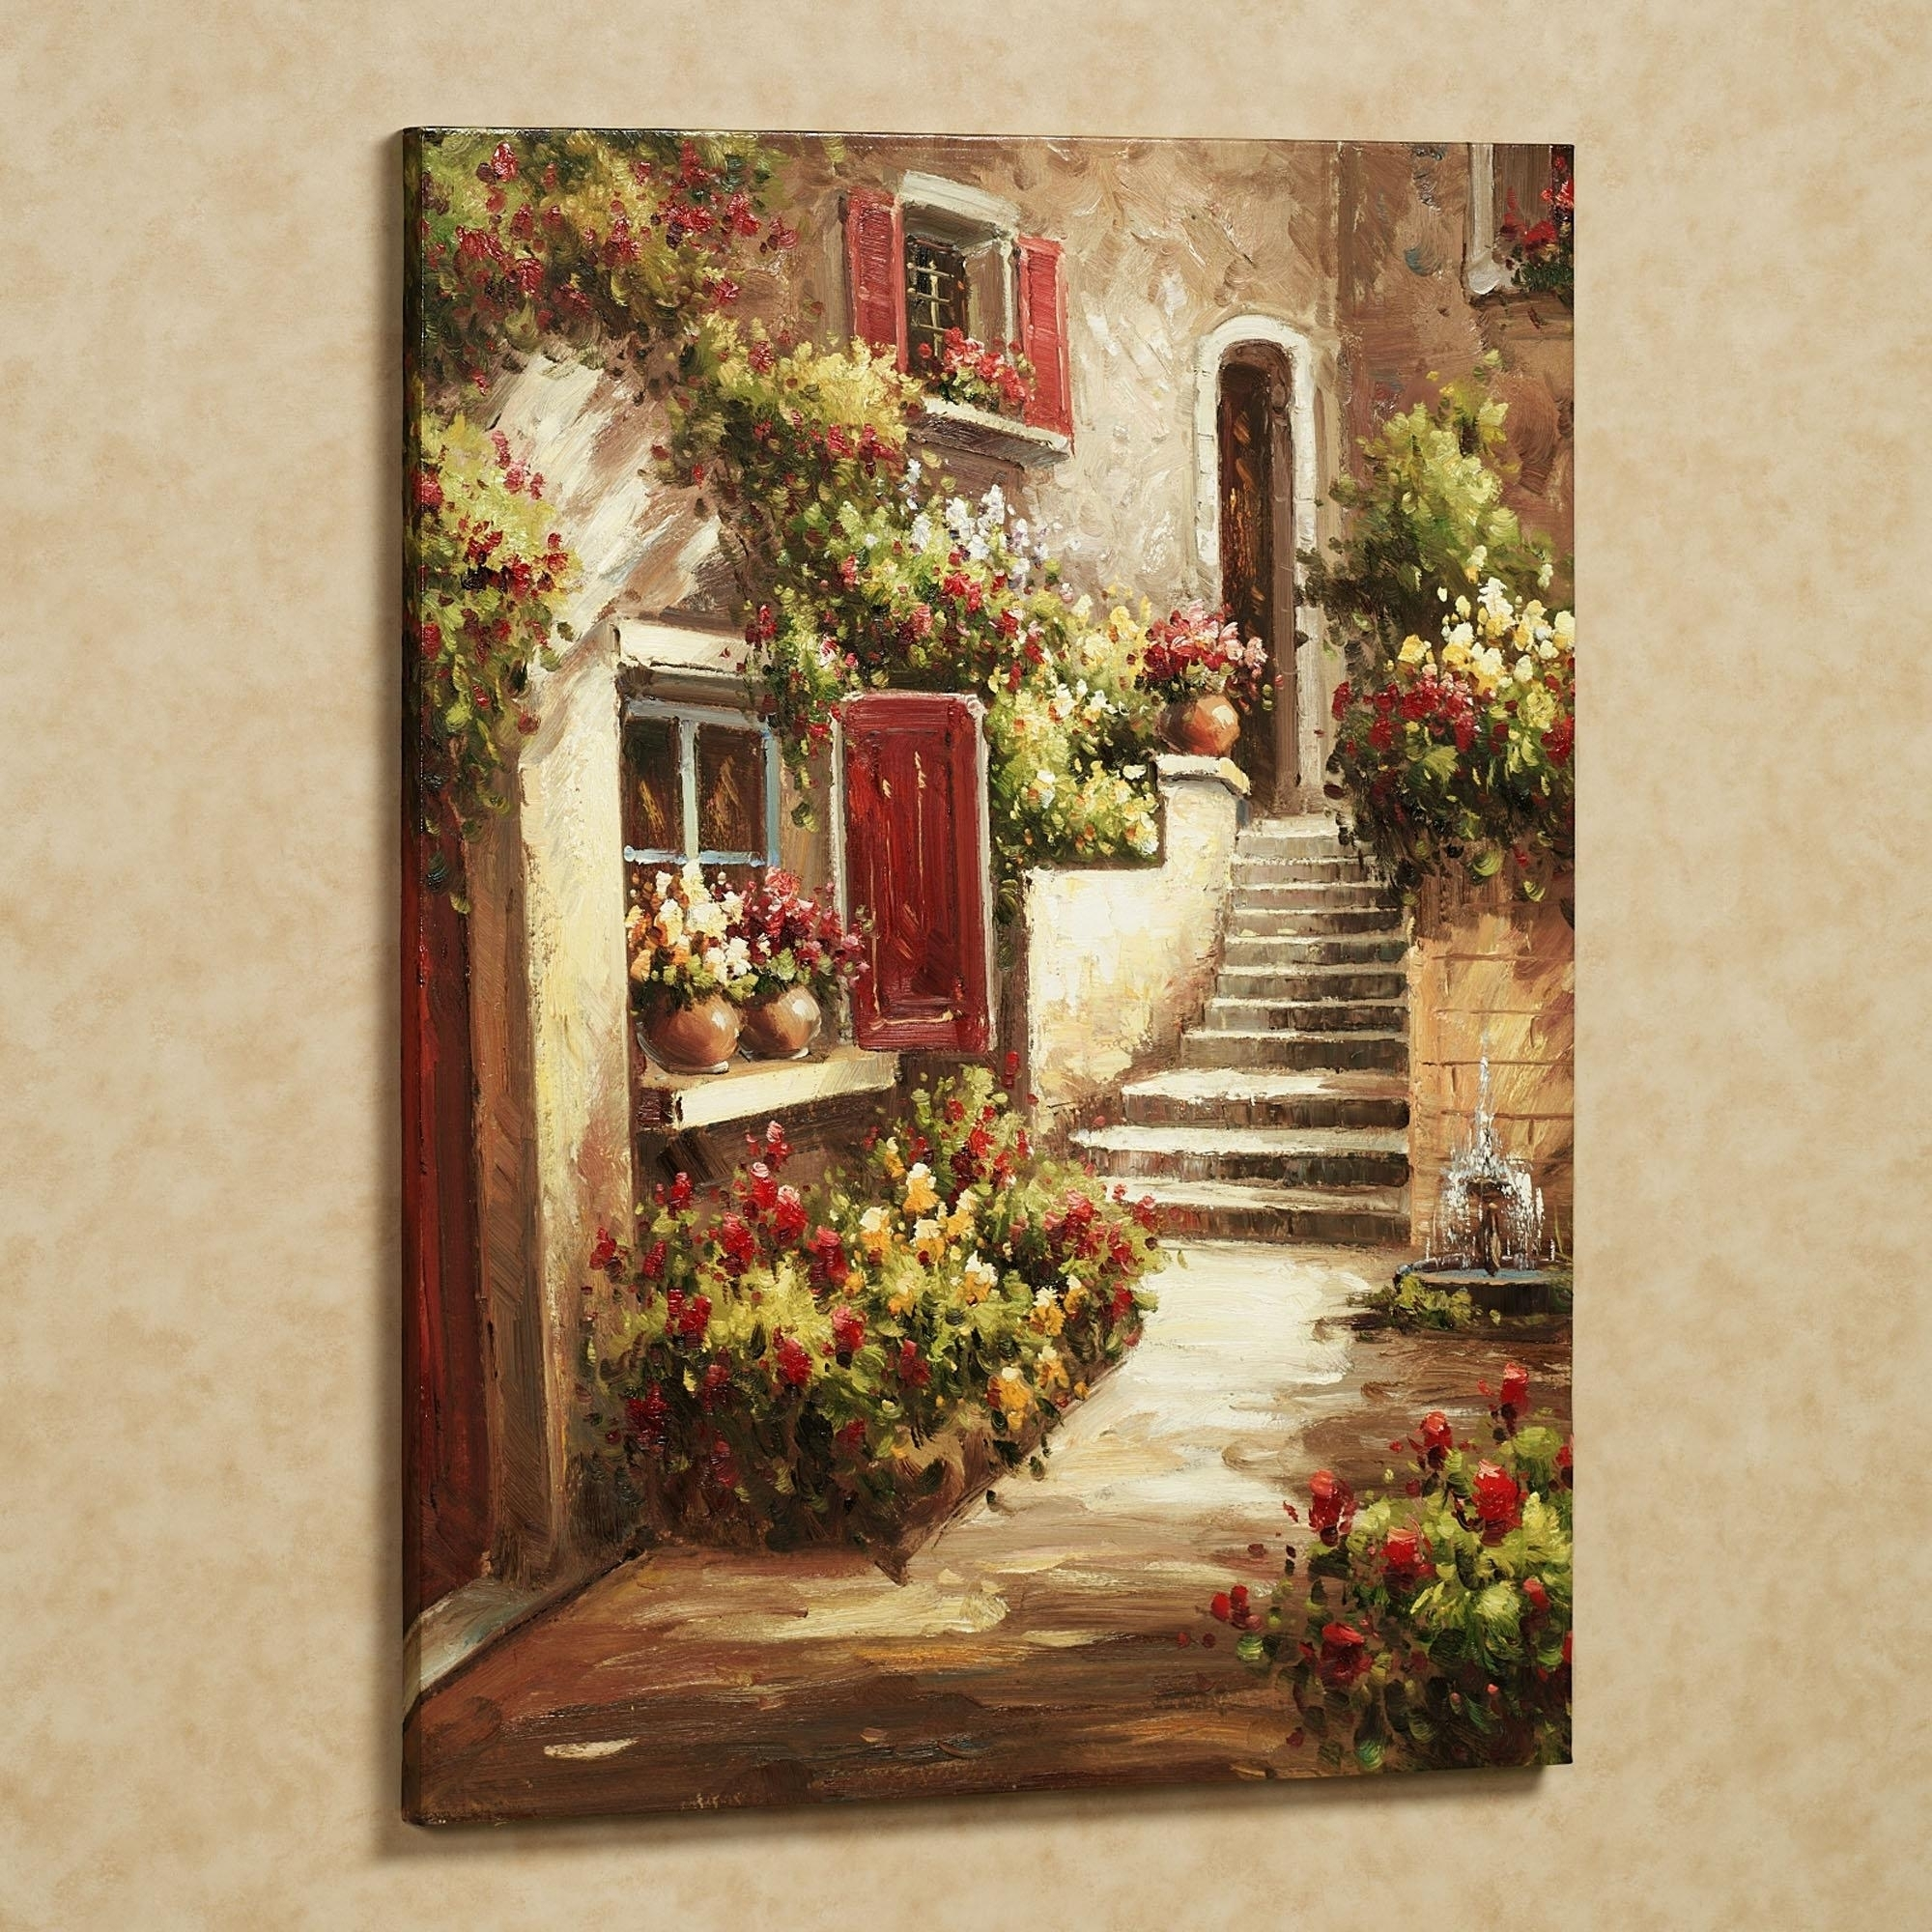 17 Traditional Wall Art Home Design Arts Decor Crecaranking Within Latest Traditional Wall Art (View 1 of 15)